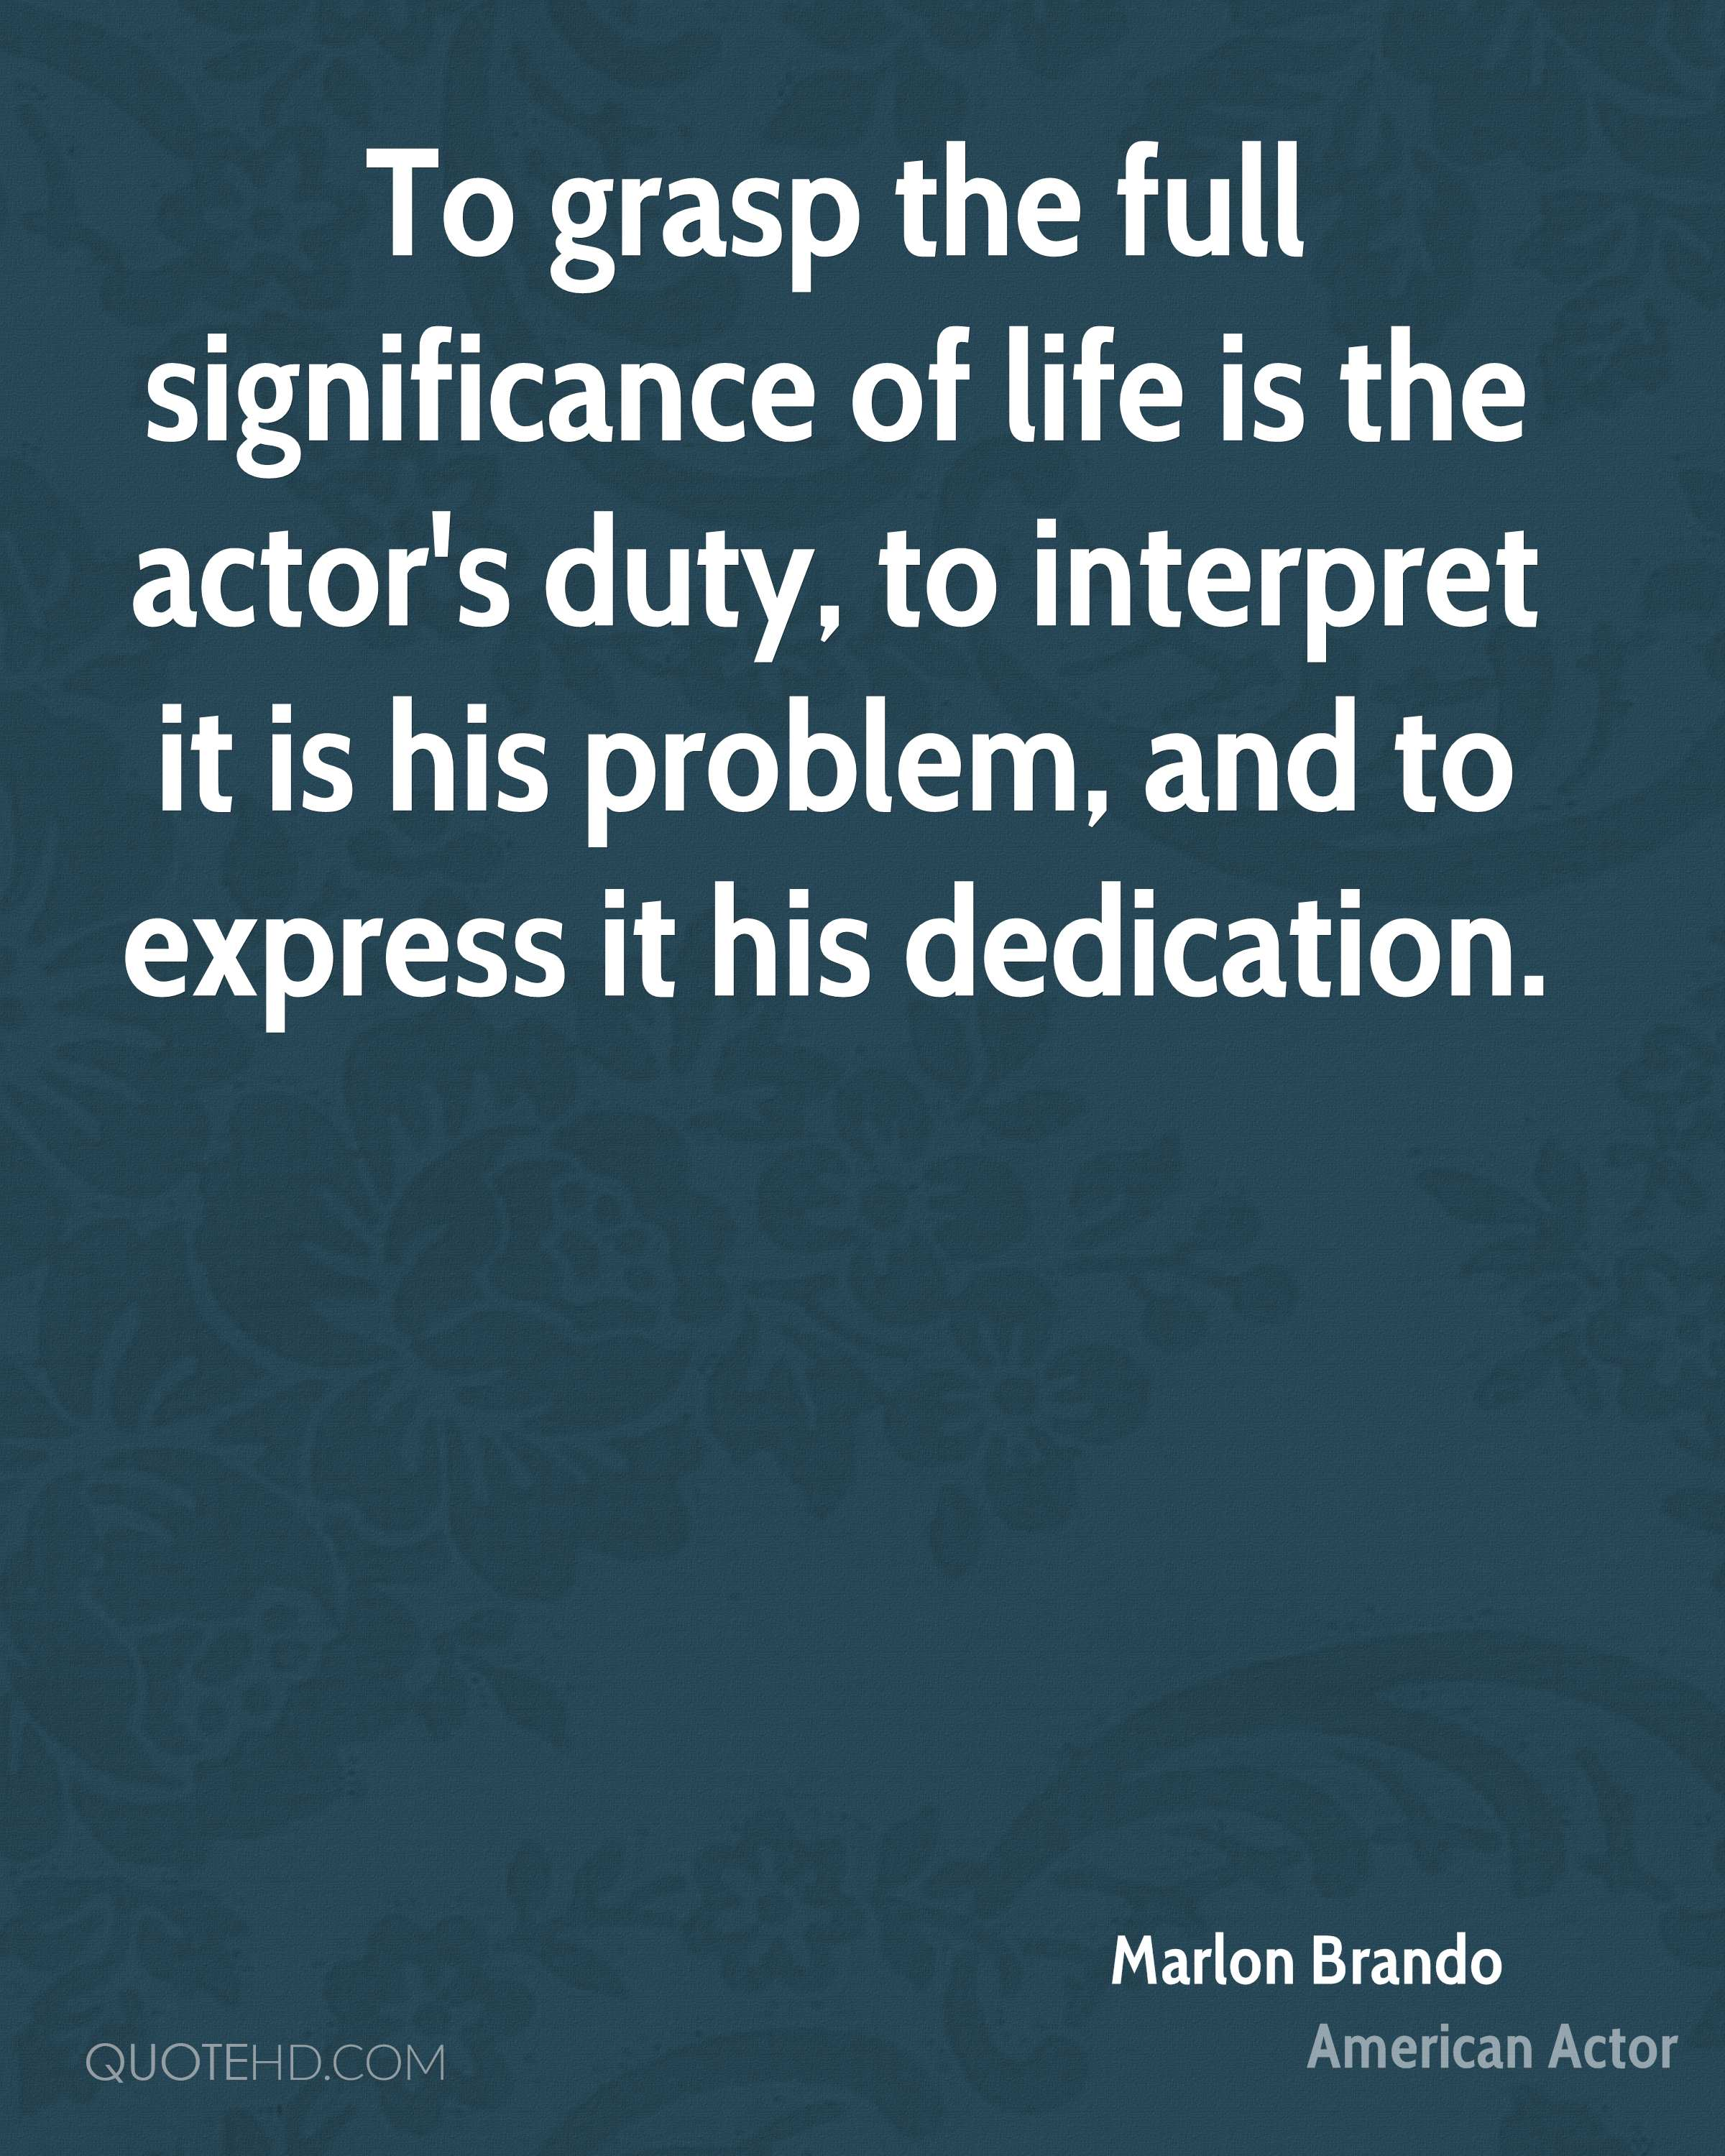 To grasp the full significance of life is the actor's duty, to interpret it is his problem, and to express it his dedication.